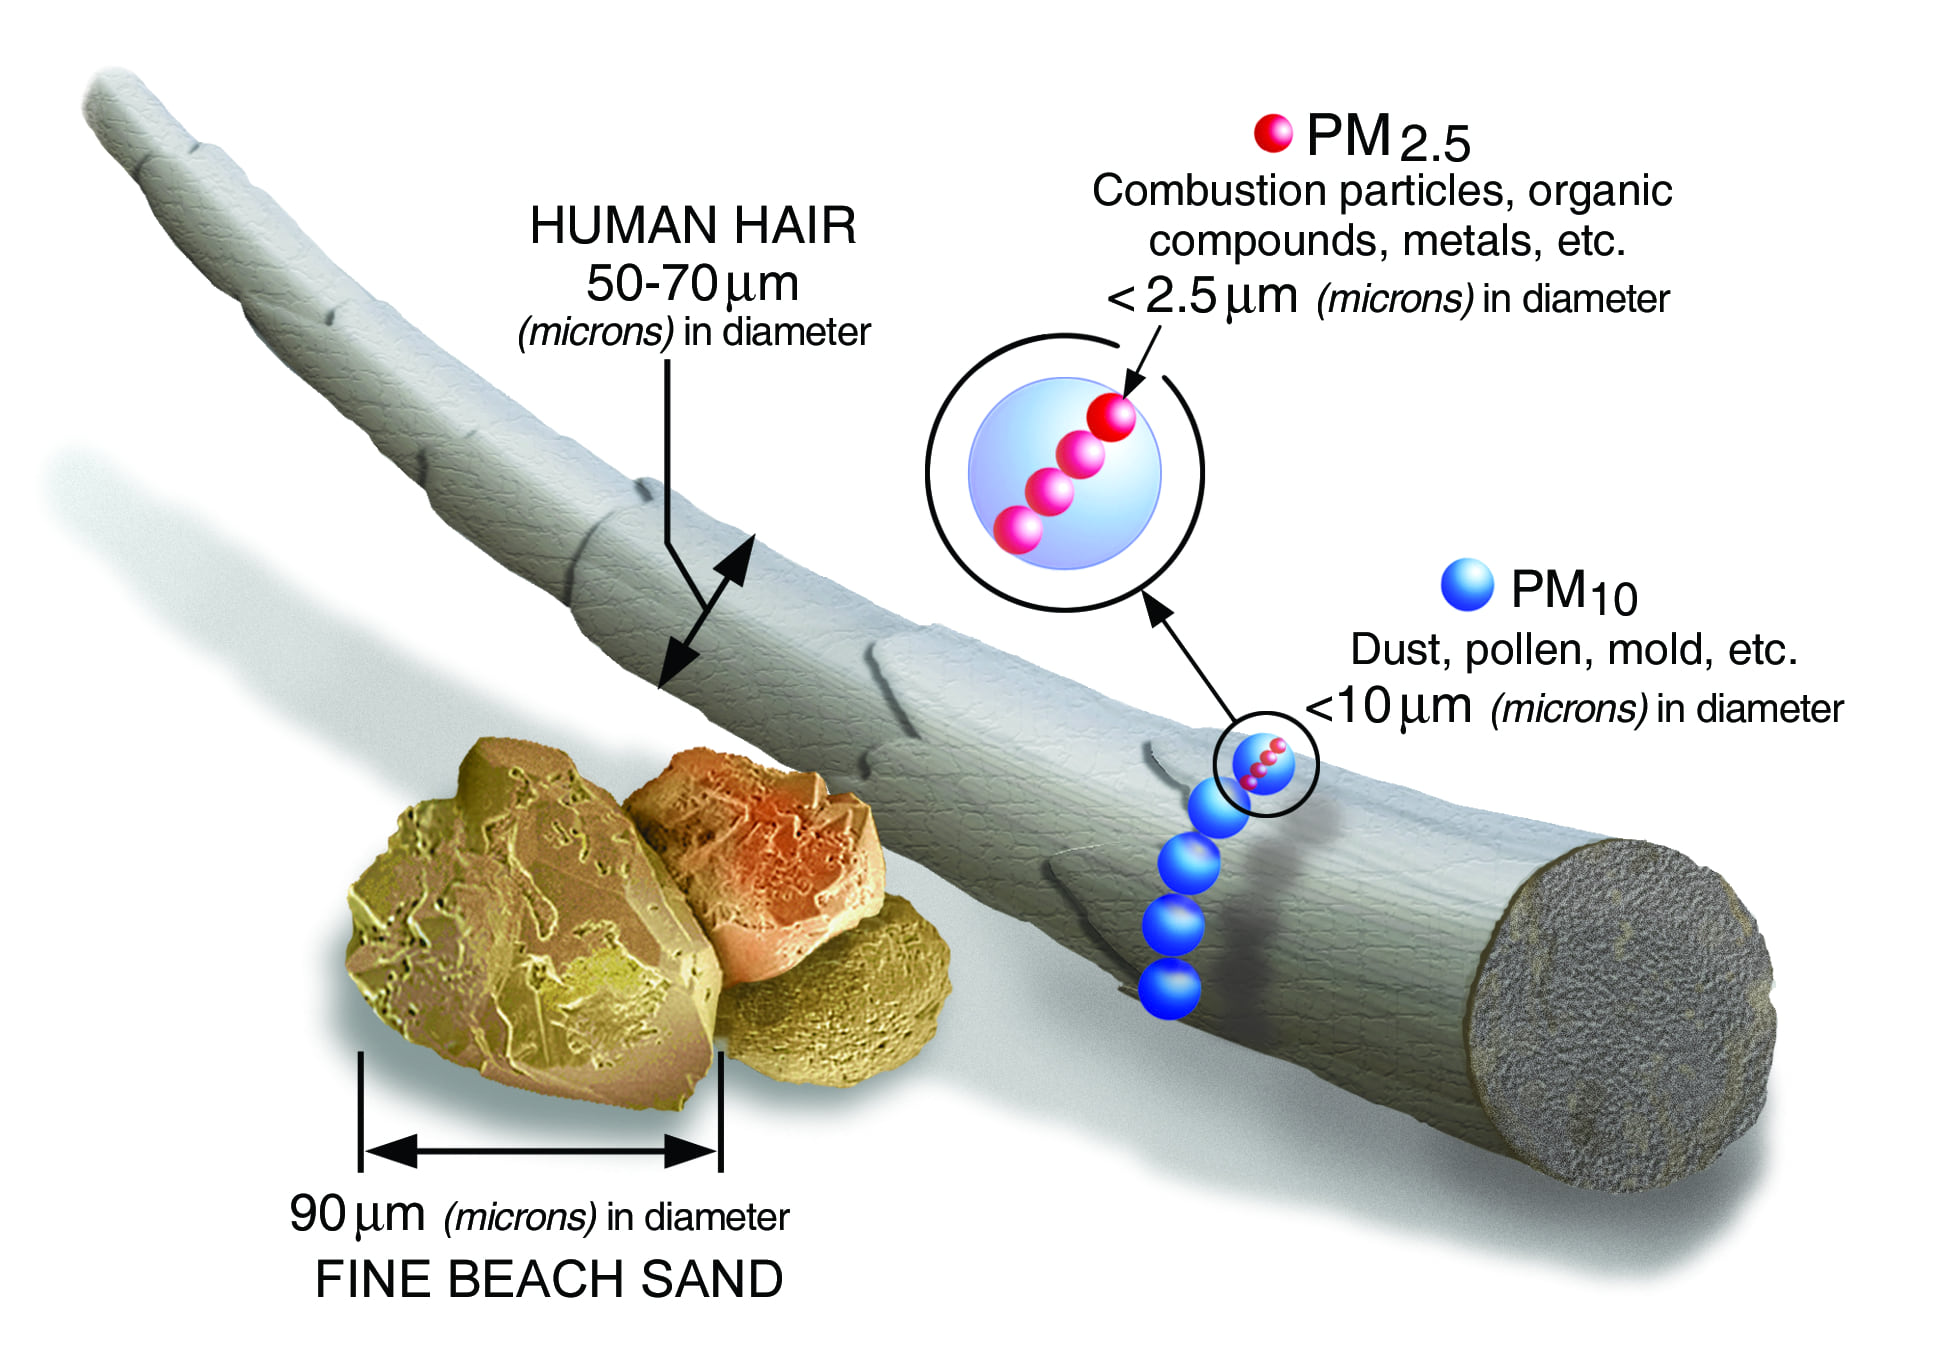 Illustration showing the scale of particulate matter